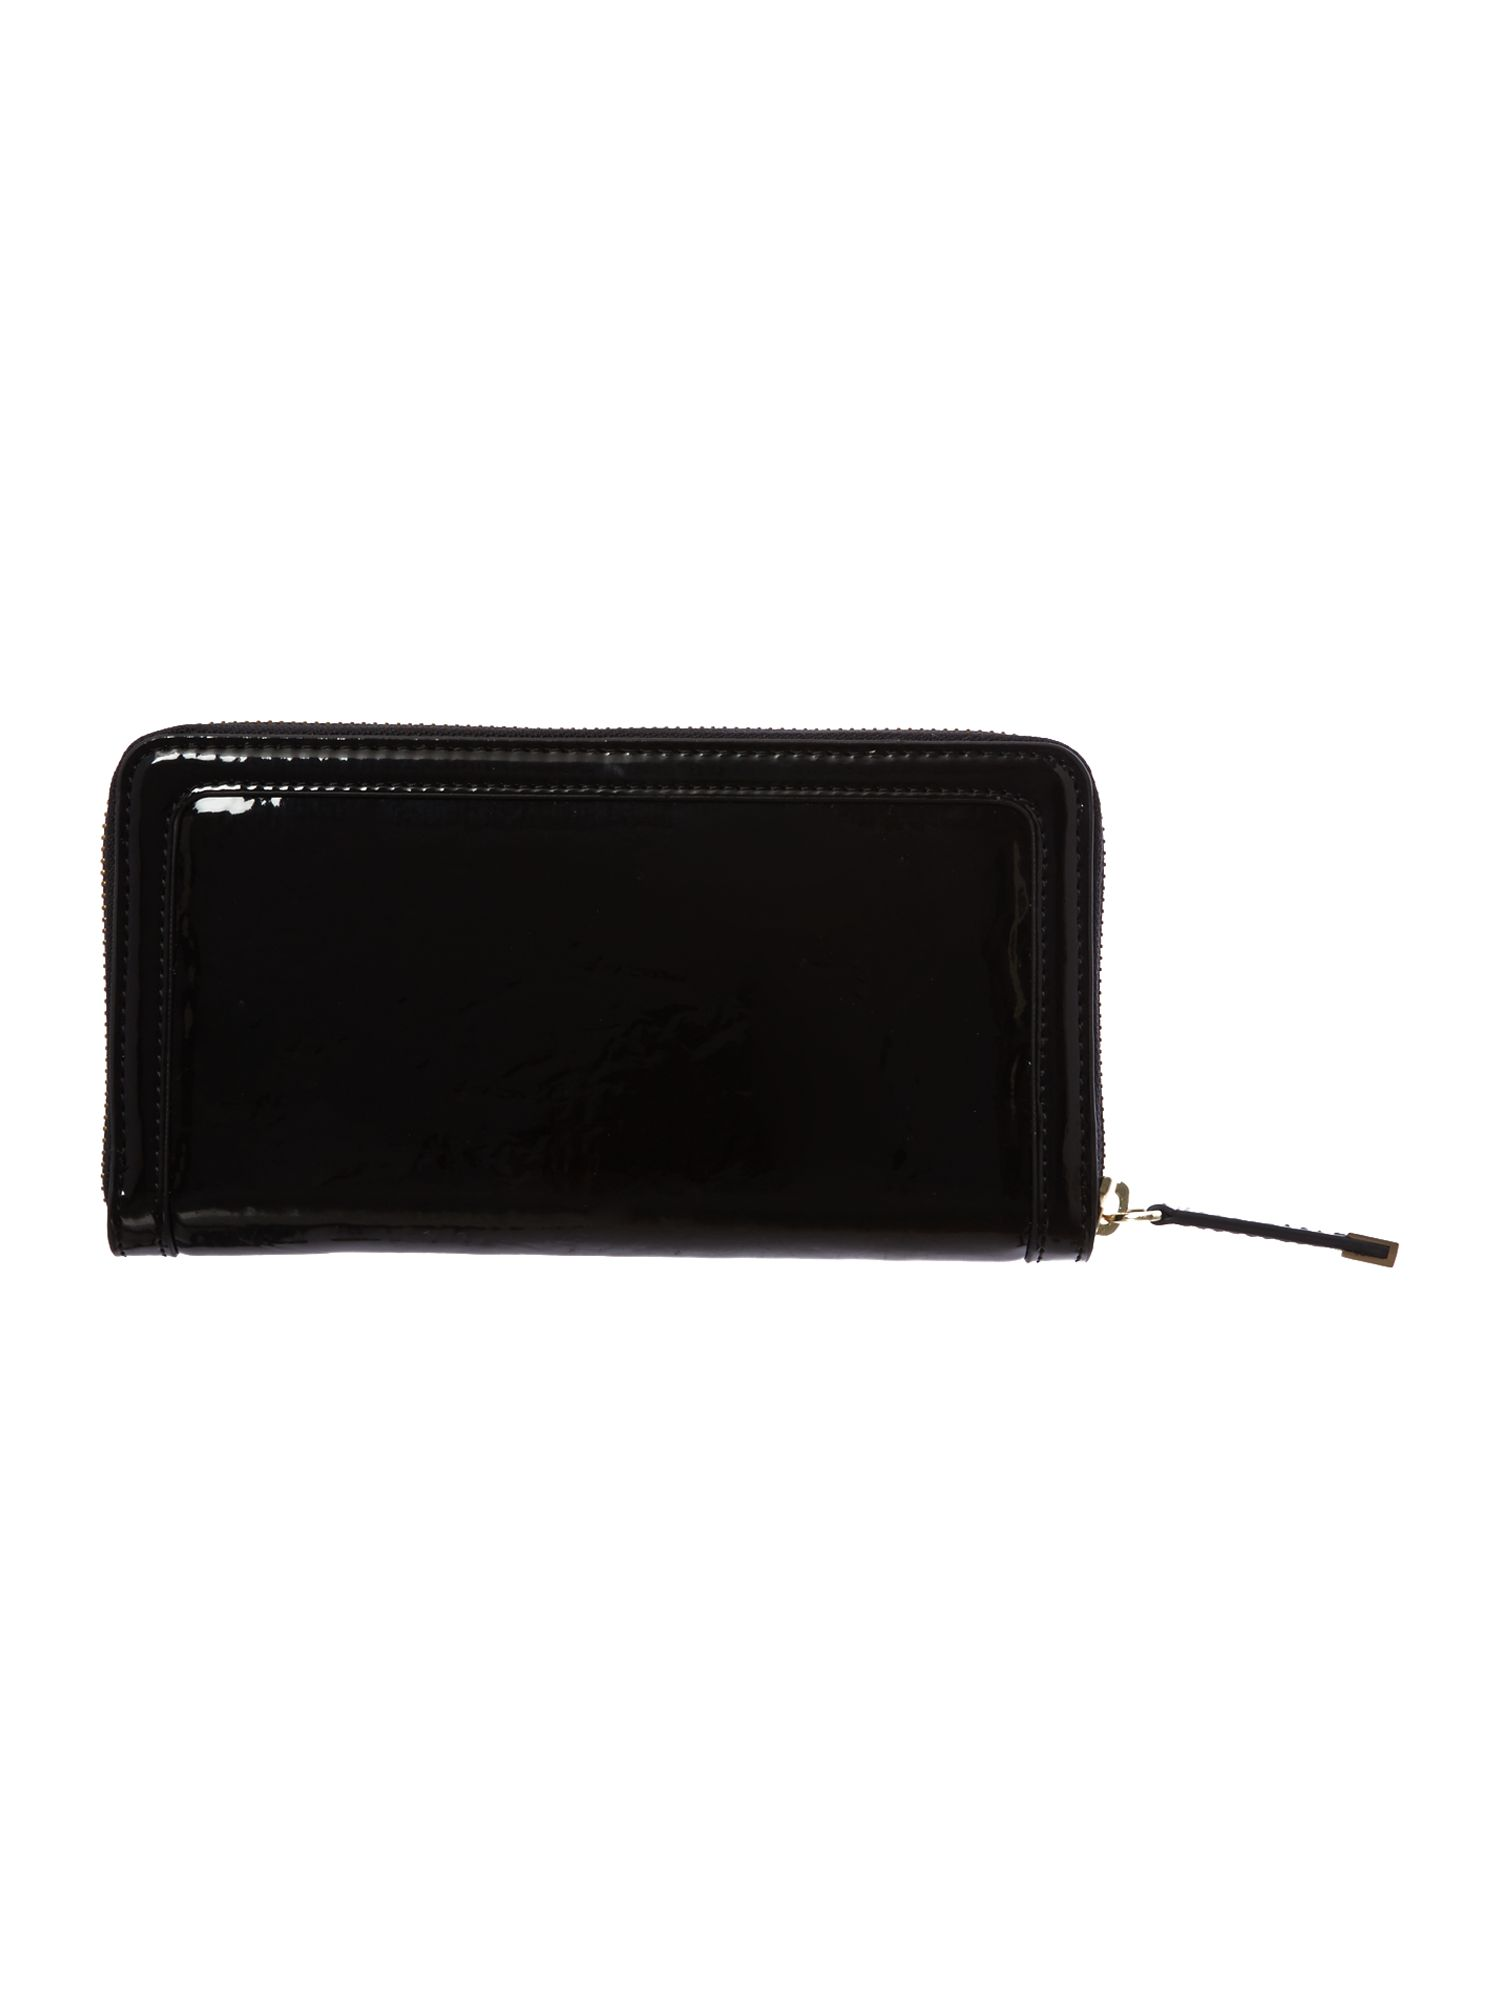 Black patent large zip around purse